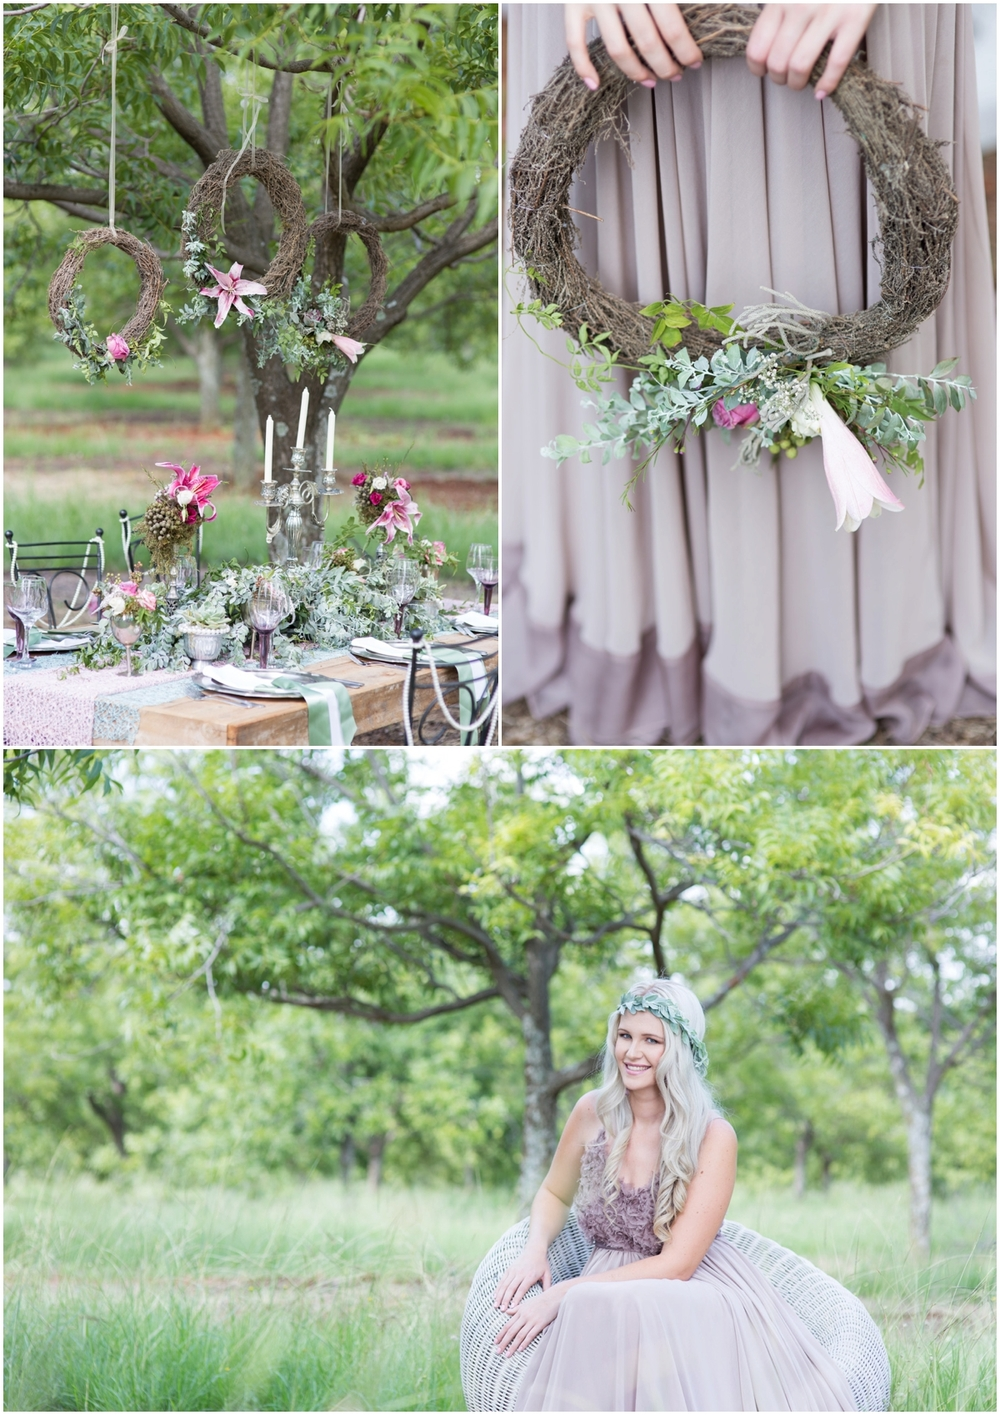 Shokran pretoria wedding venue shoot076.jpg